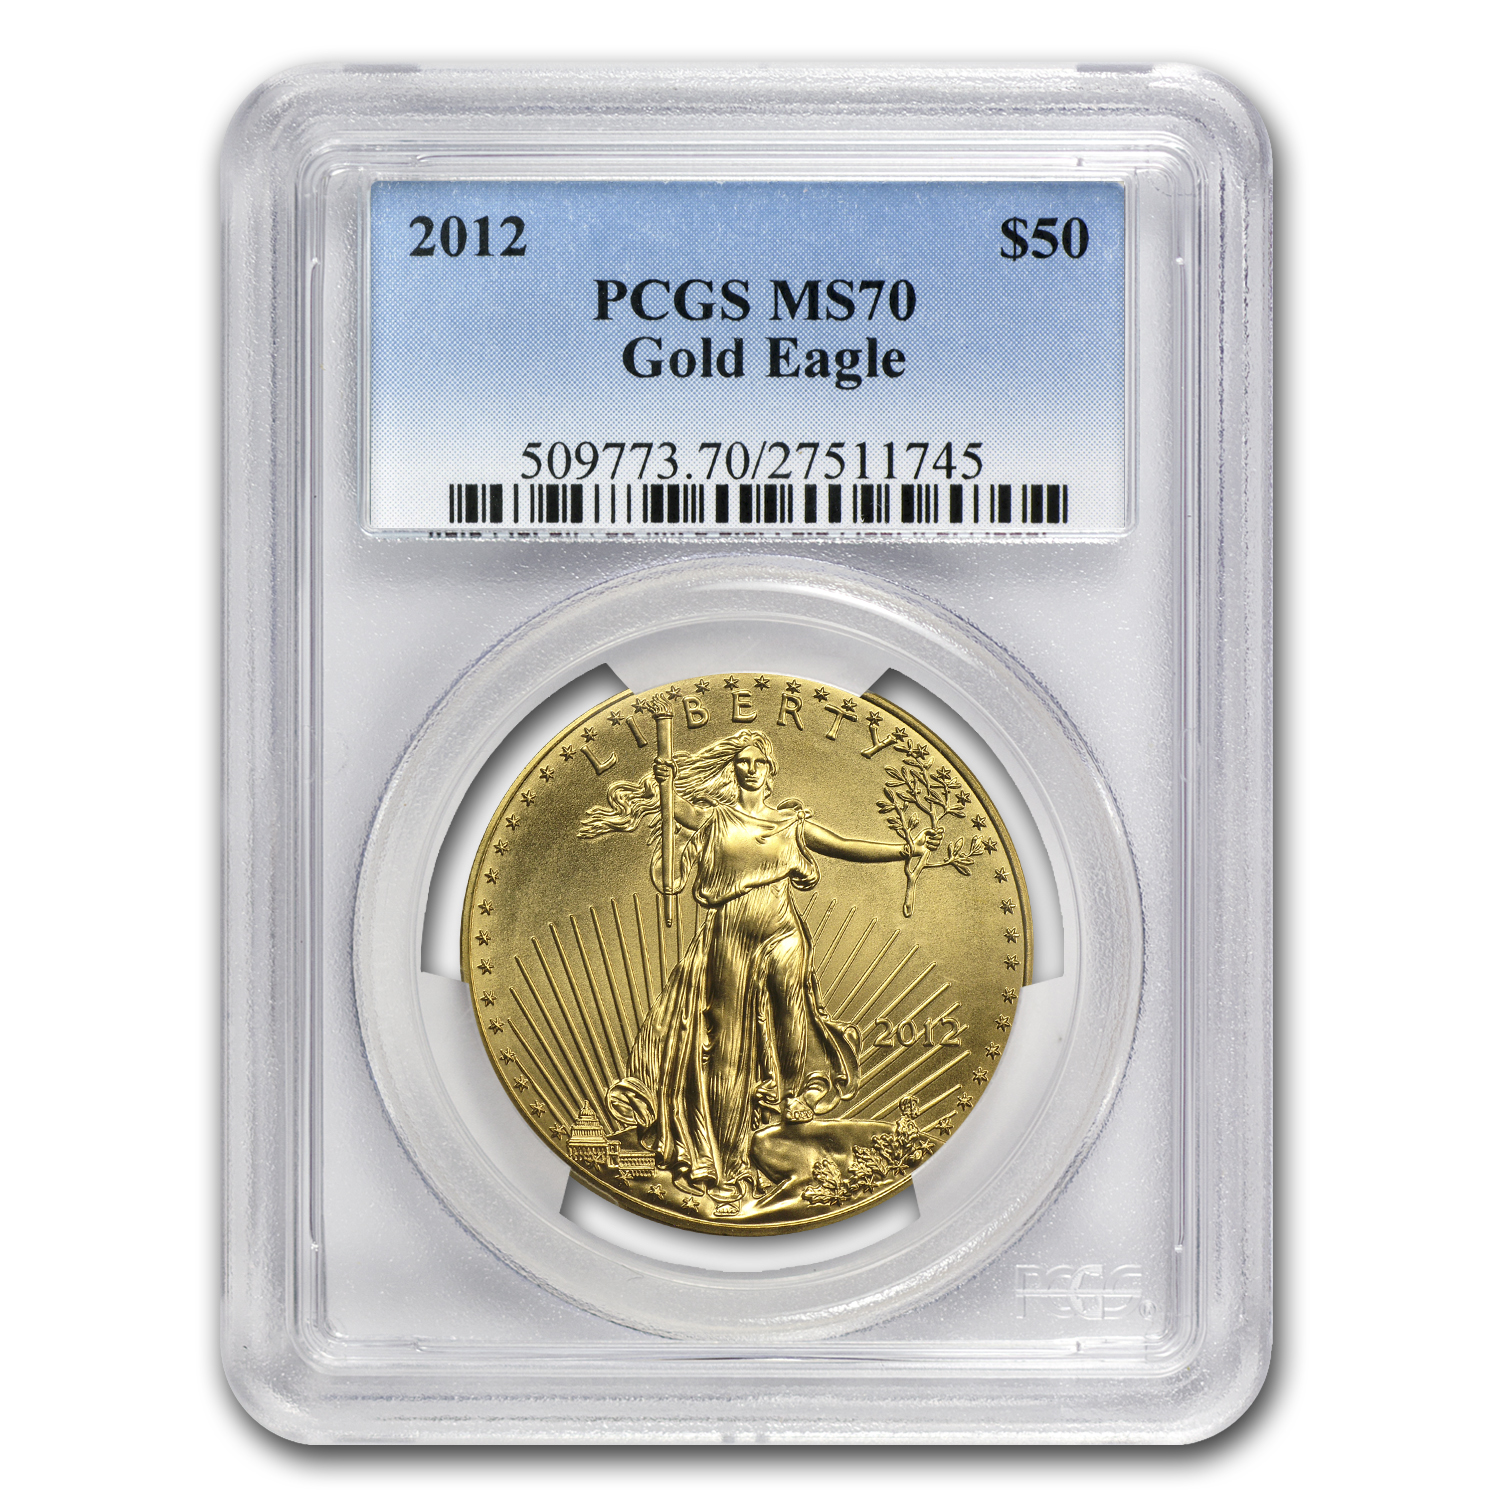 2012 1 oz Gold American Eagle MS-70 PCGS